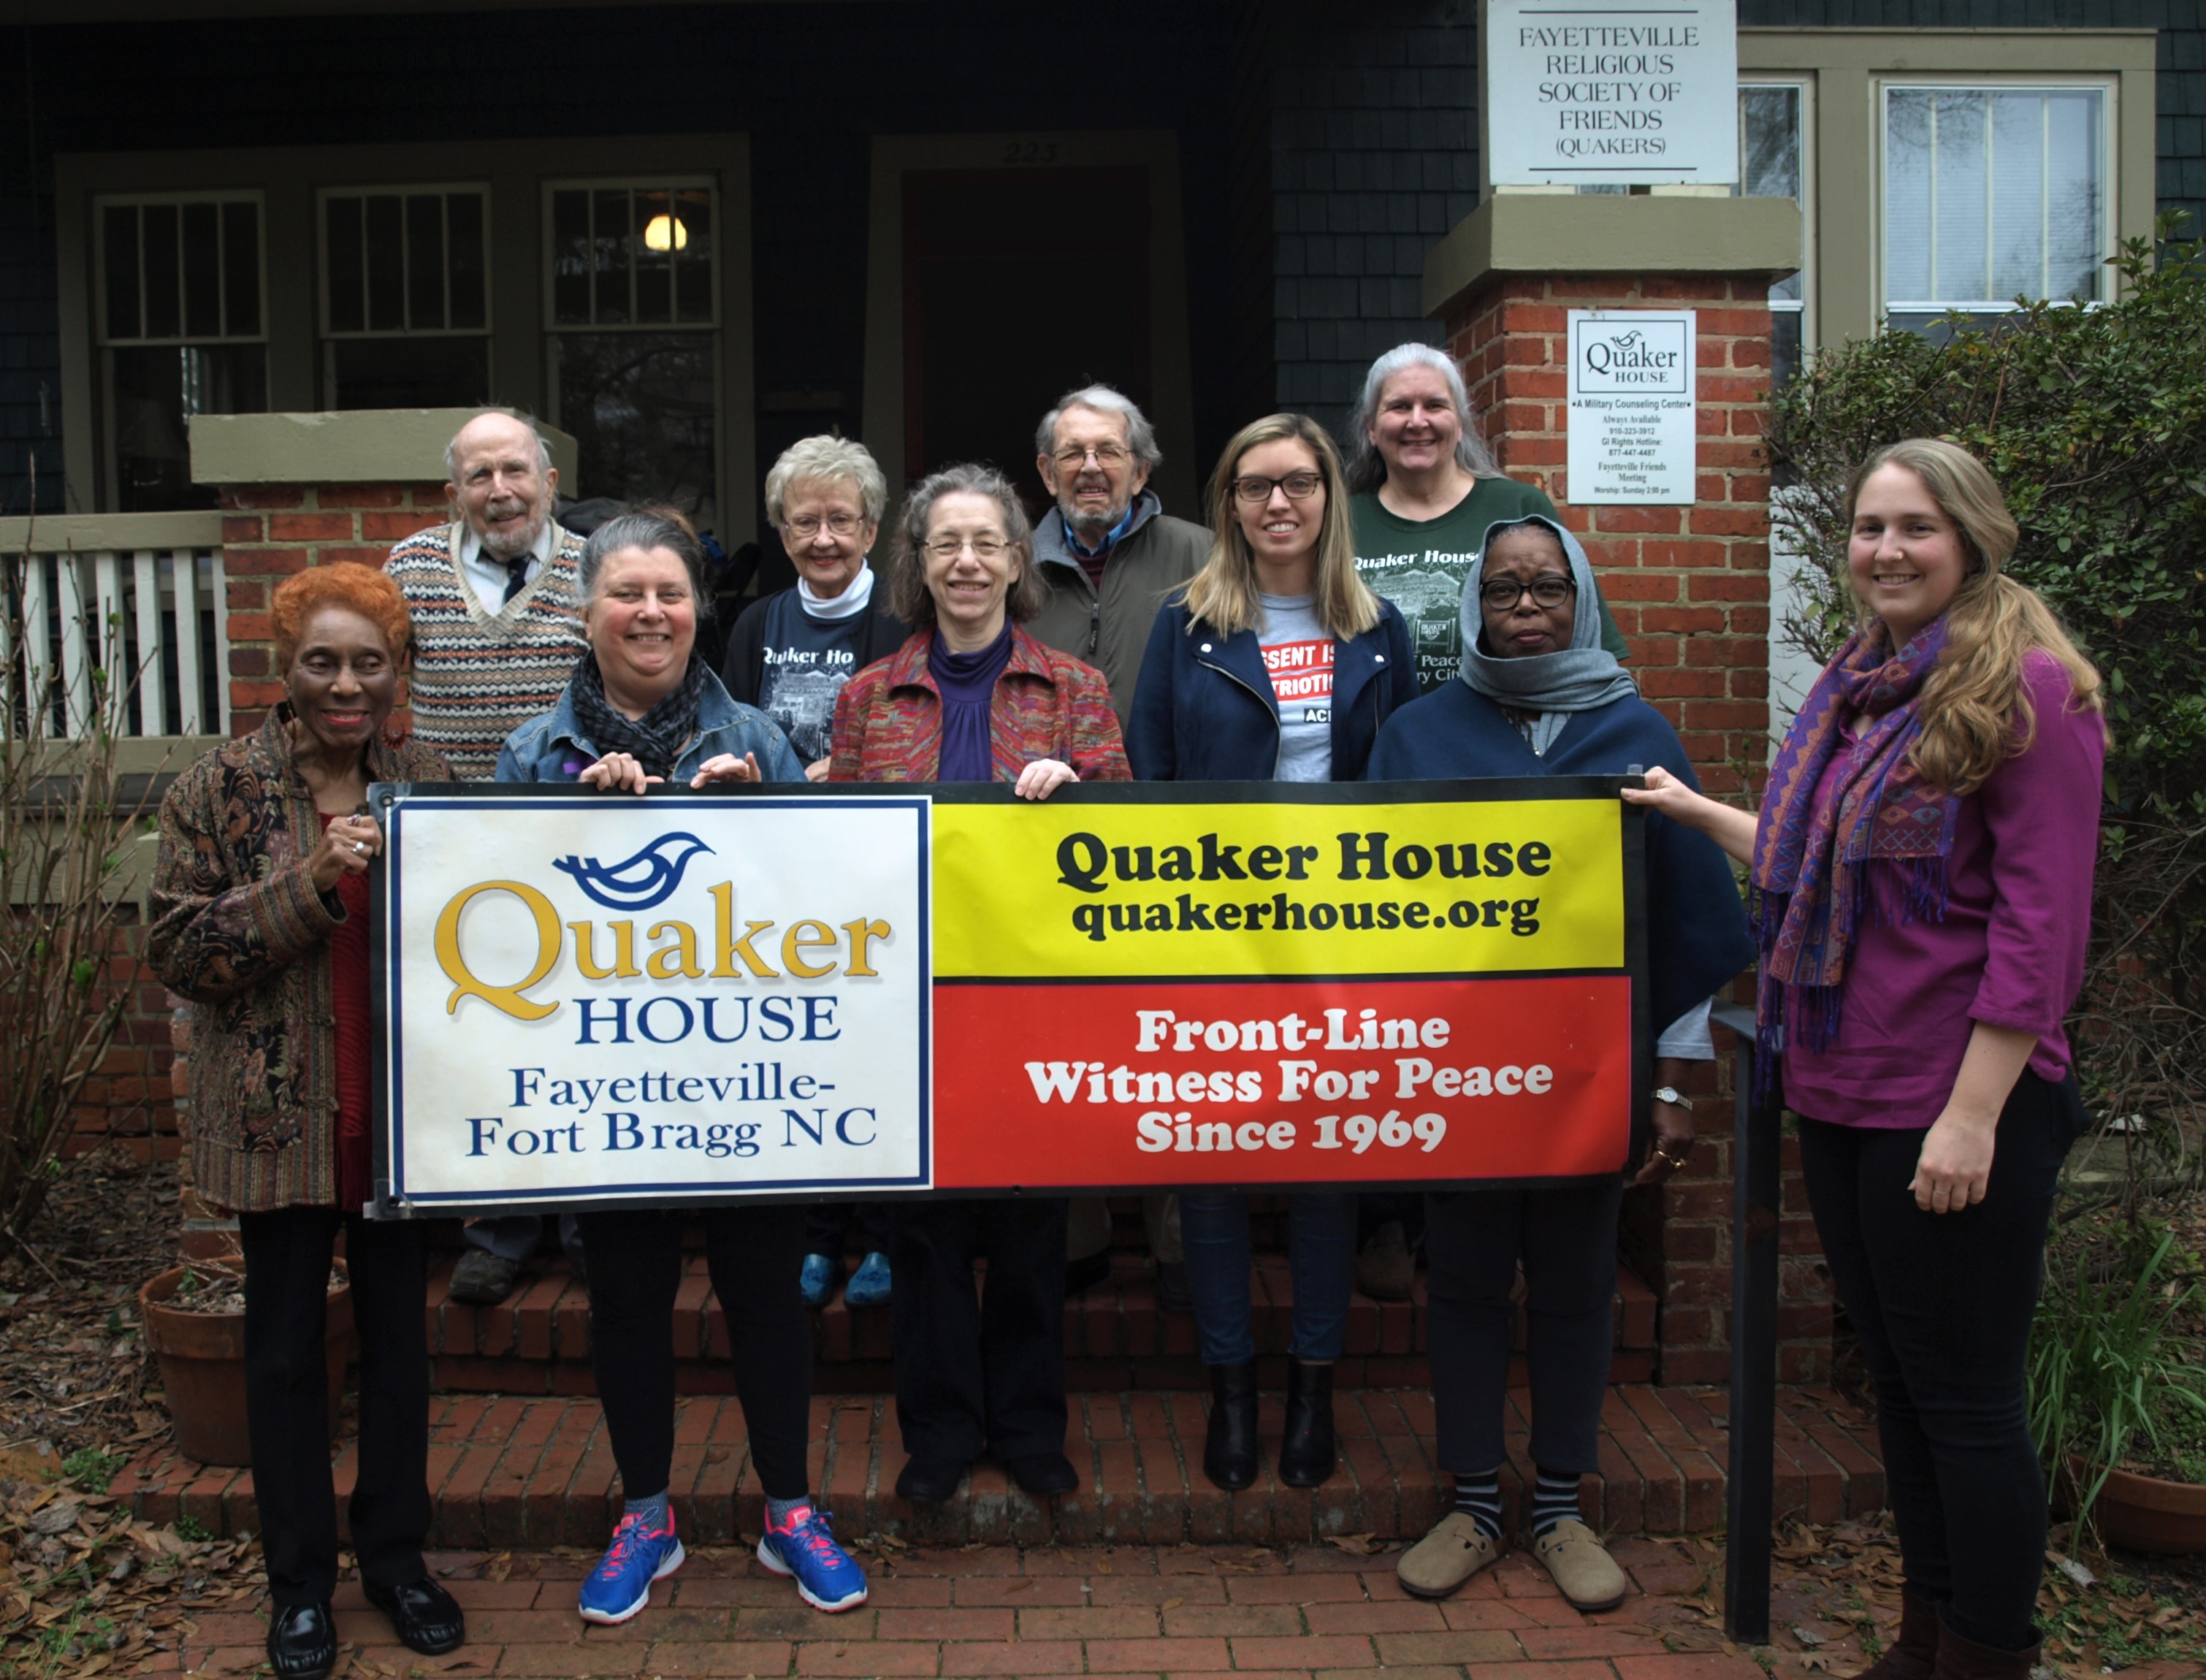 group of people holding Quaker House sign in front of House